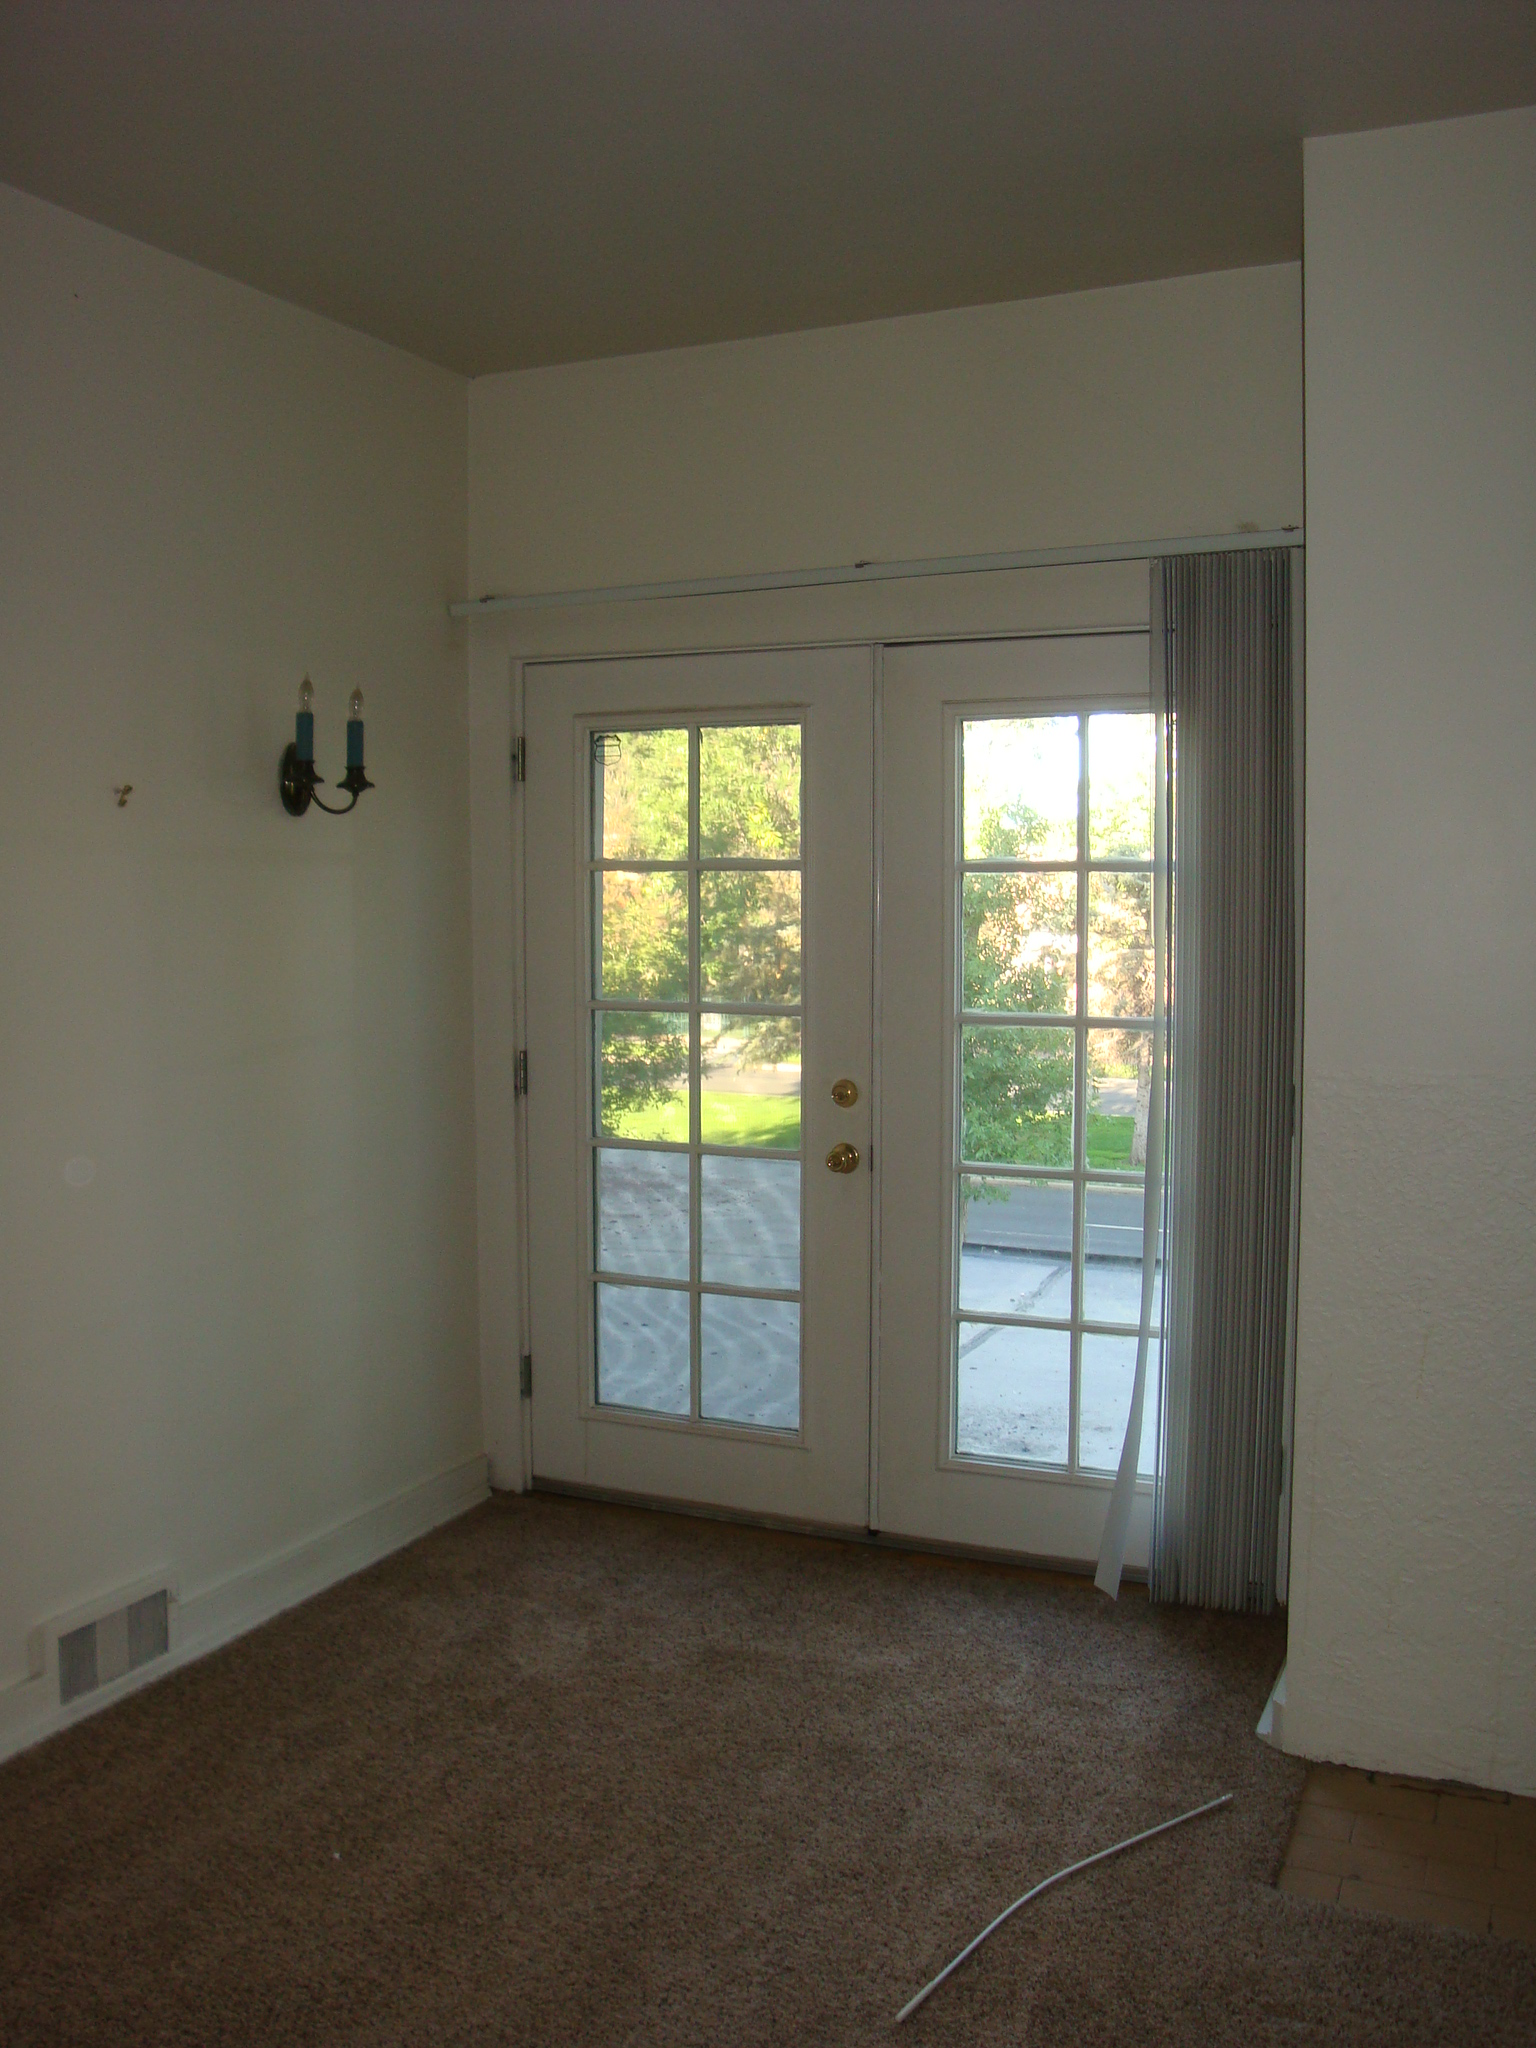 3 Bedroom Apartments In Colorado Springs 1516 N Cascade Ave 9 Avalon Properties Inc